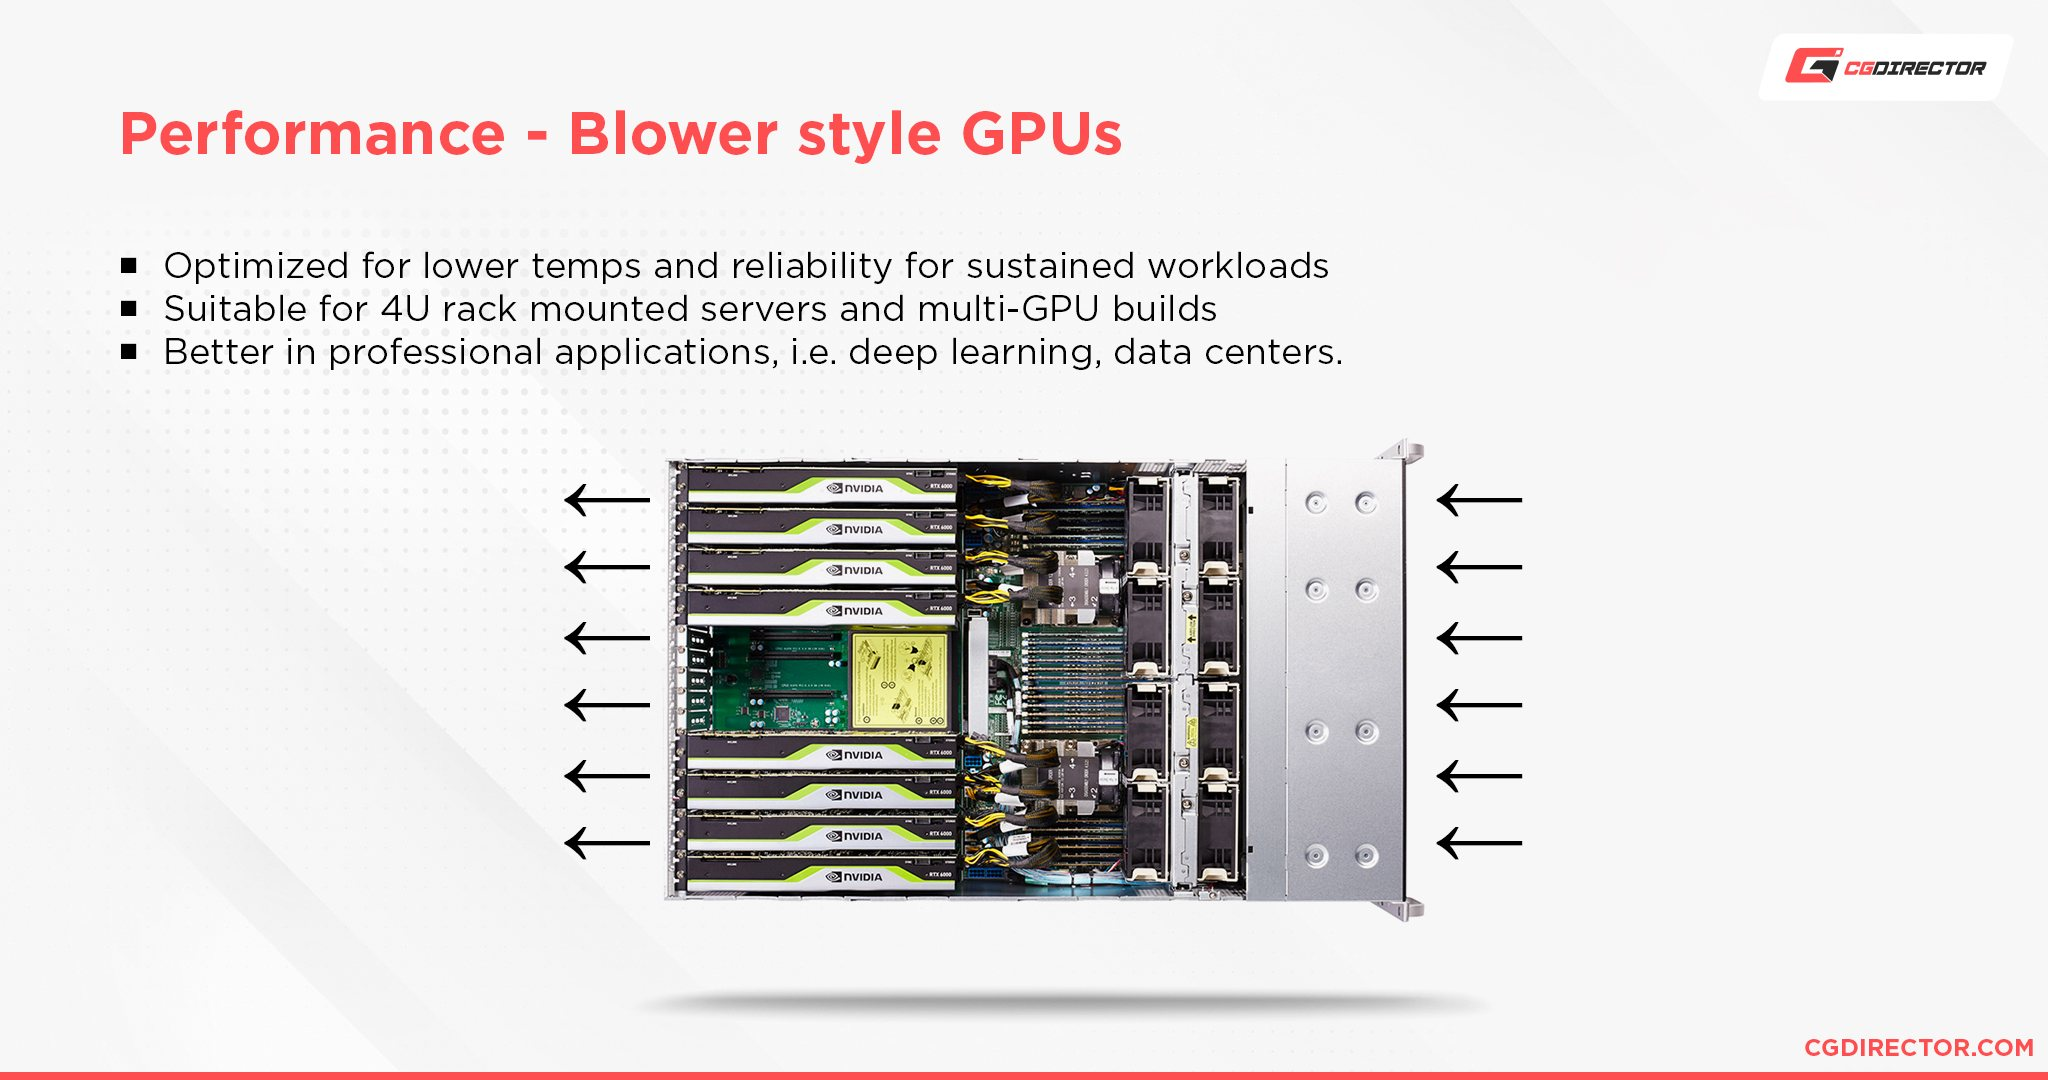 Performance and use cases - Blower style GPUs